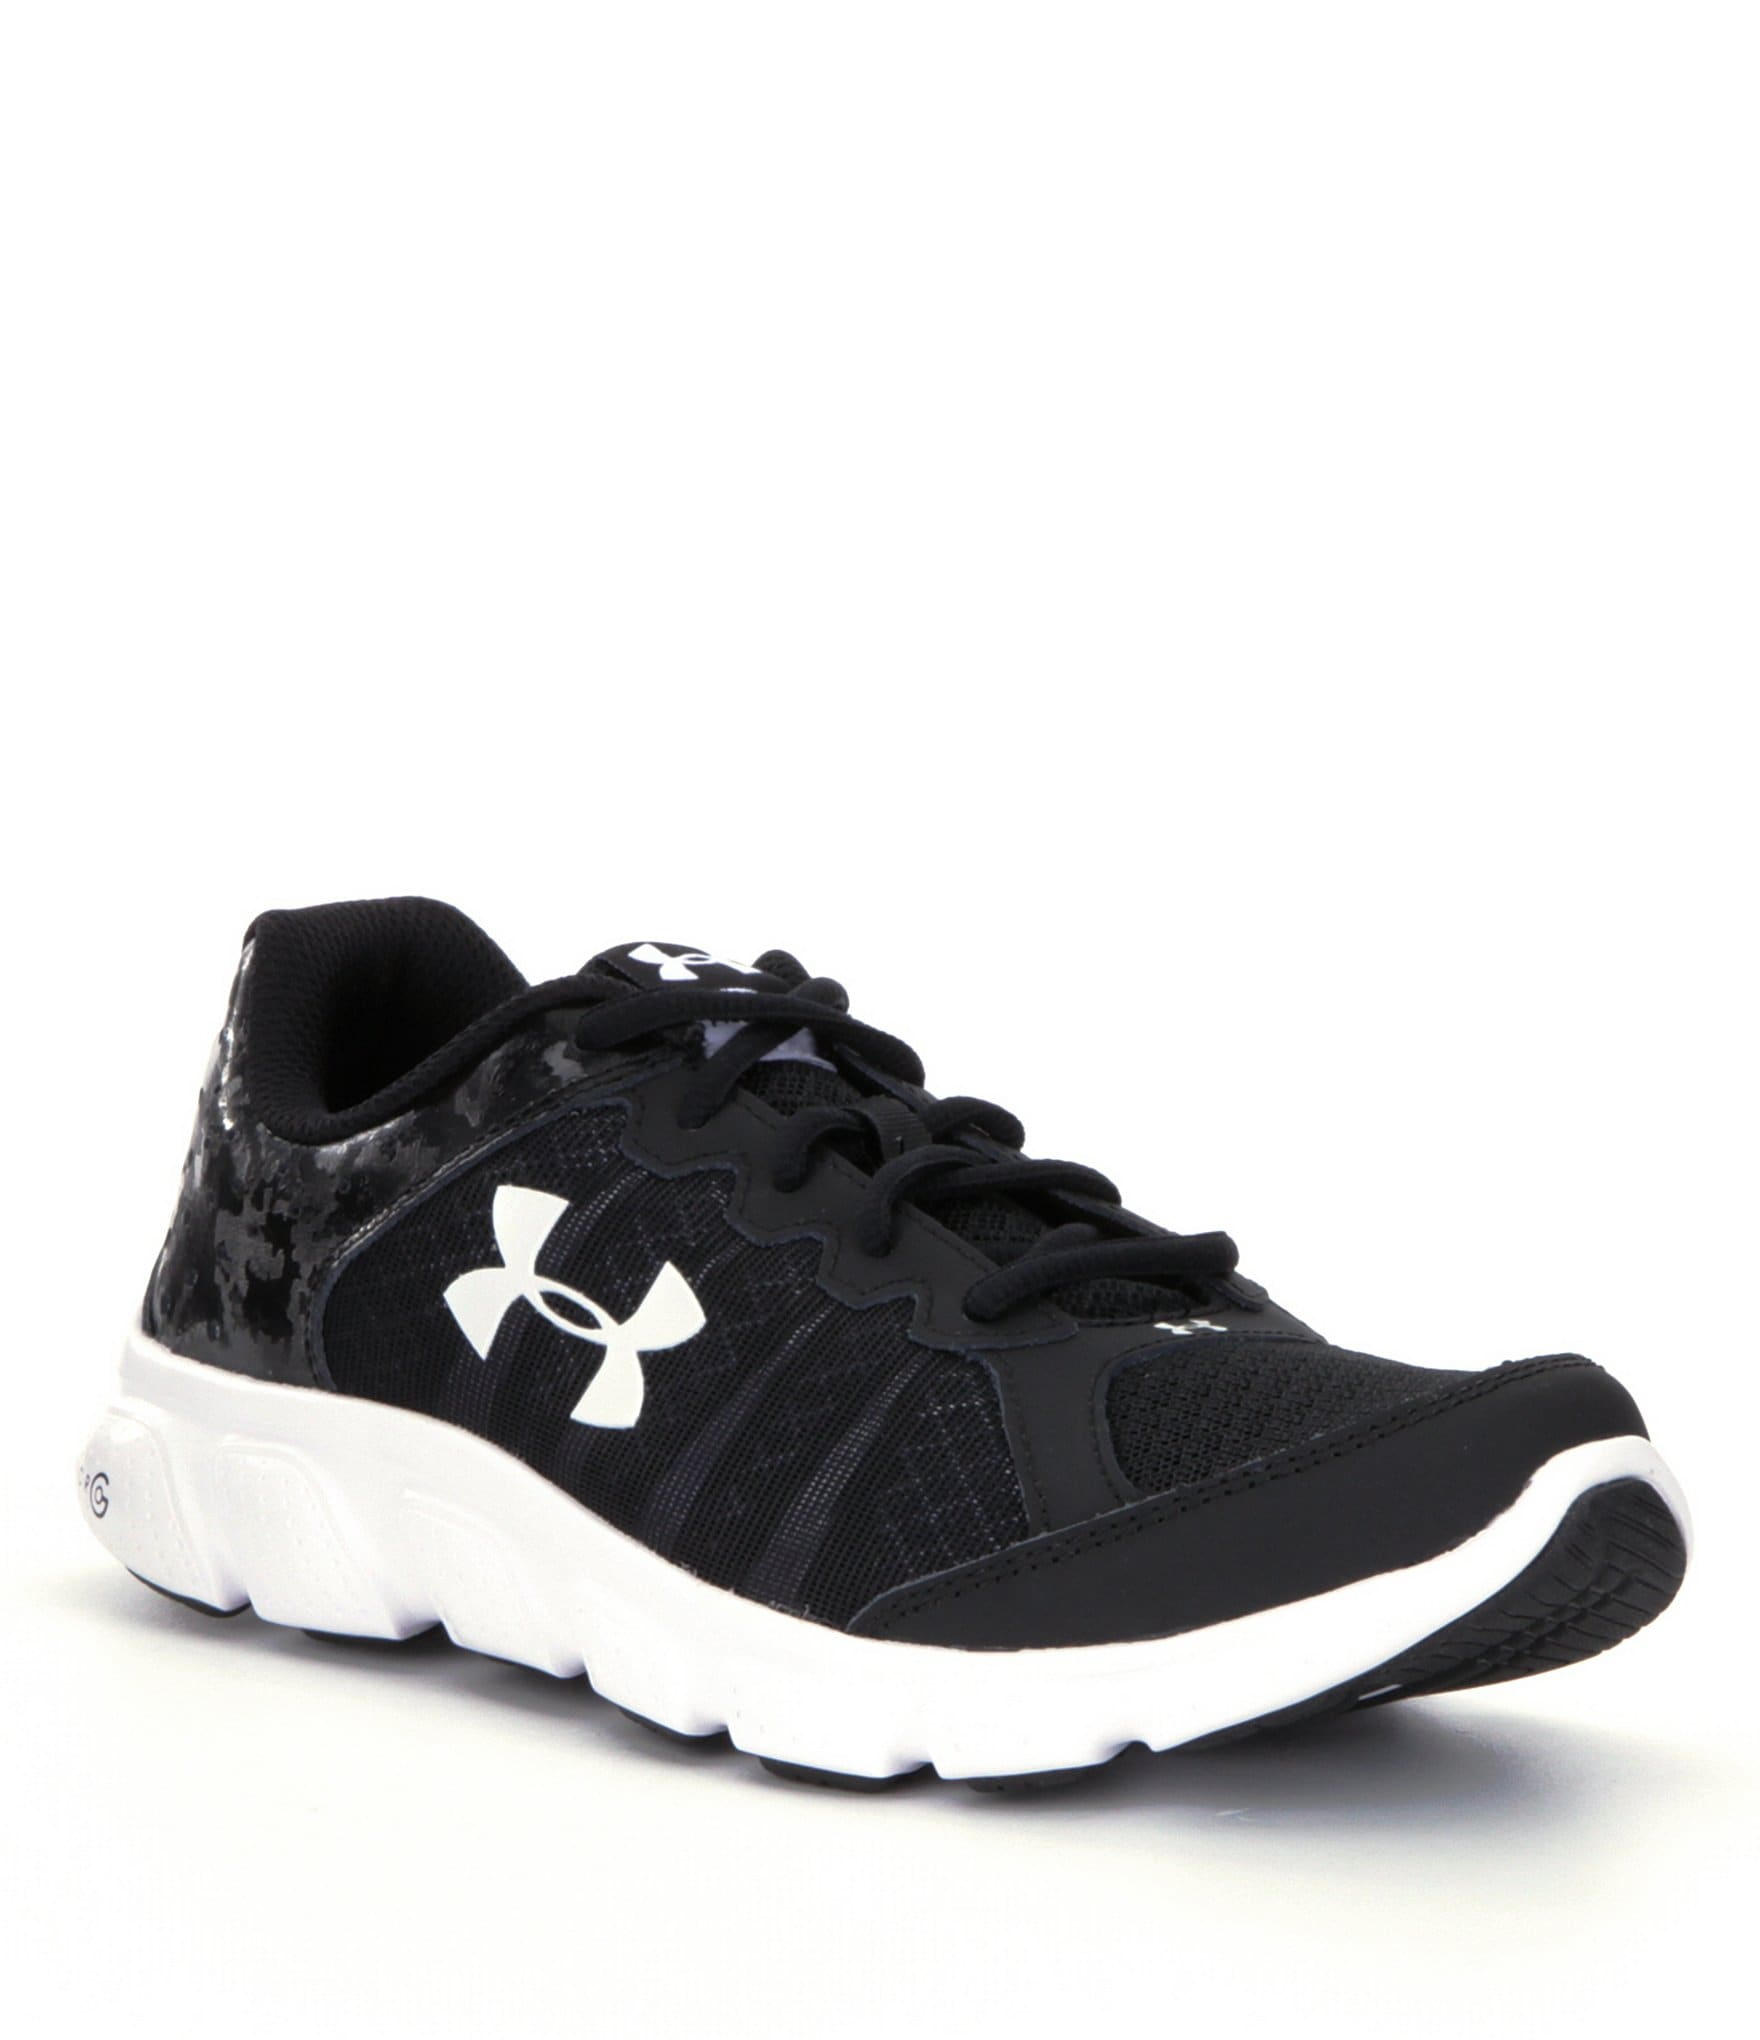 Boys Running Shoes Clearance